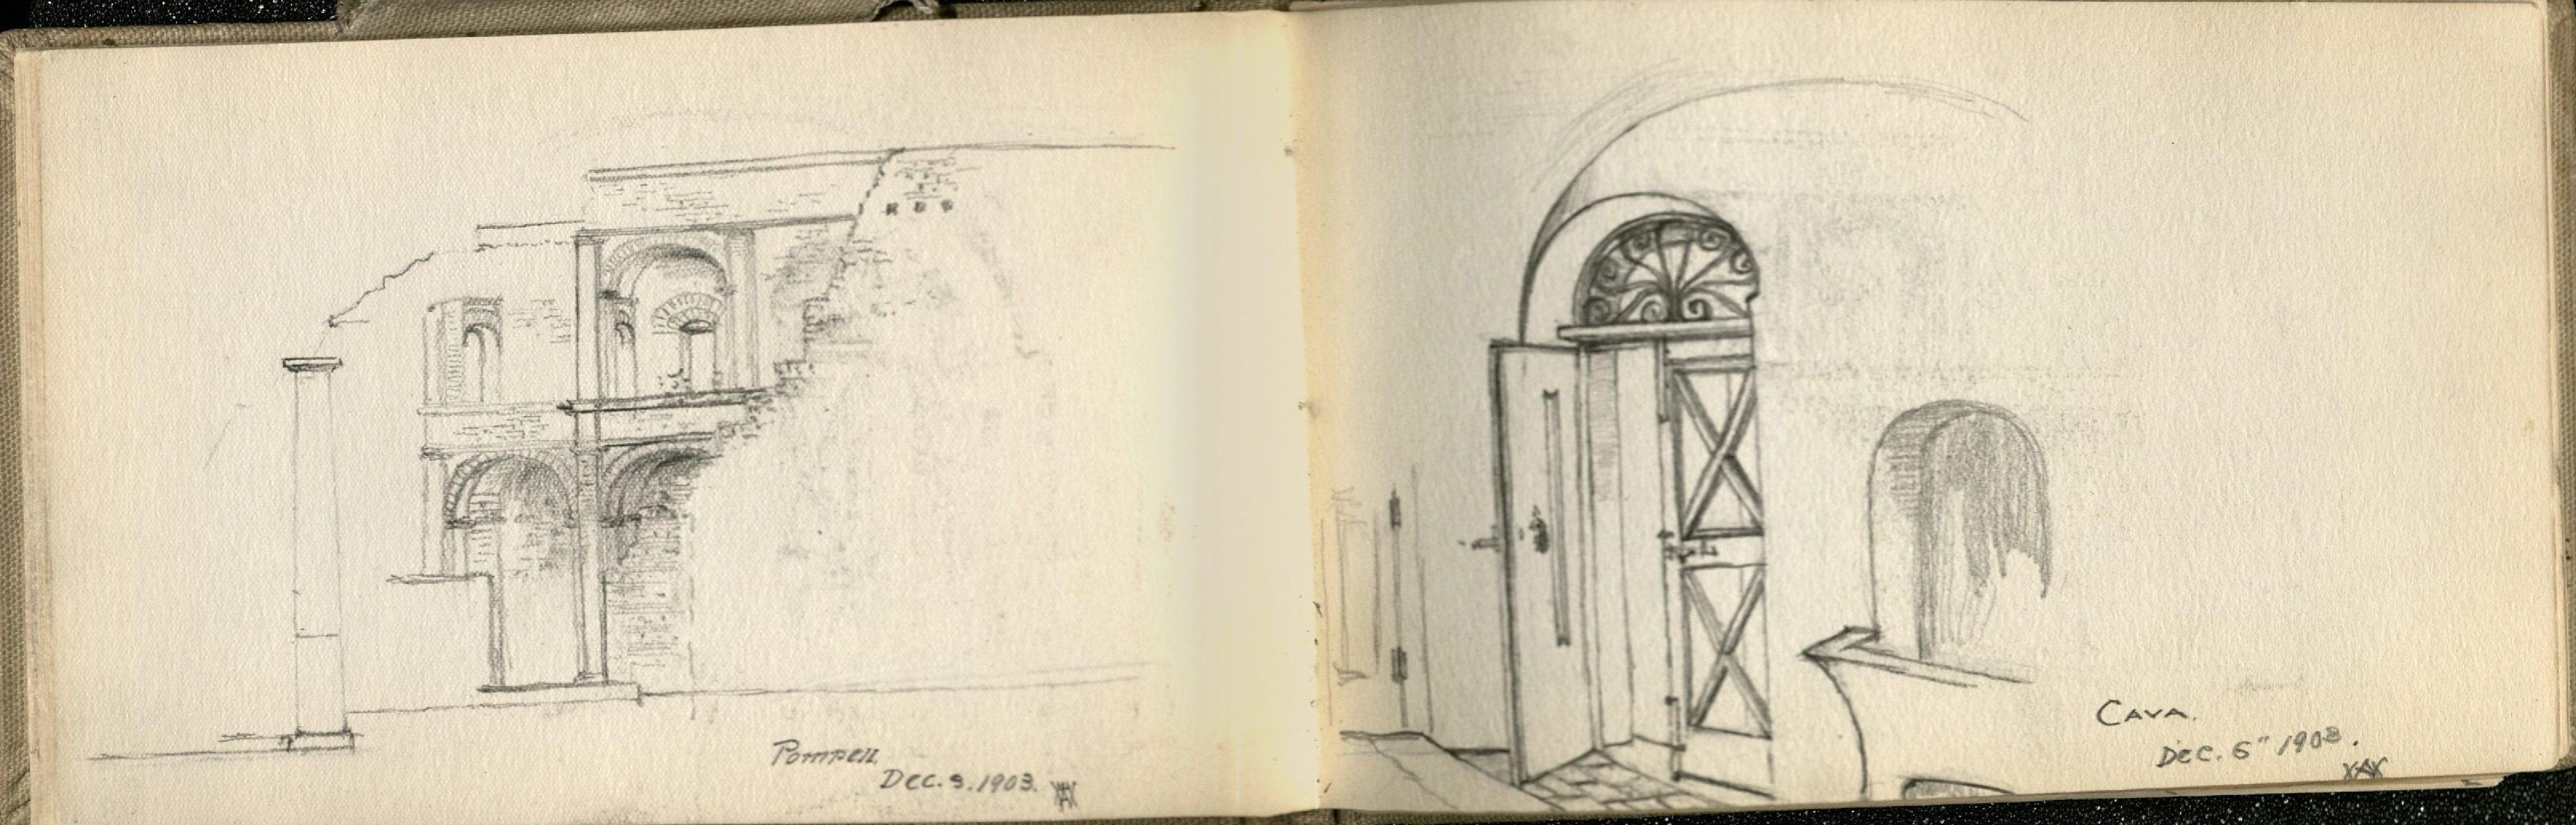 "Alda Wilson European Sketchbook, 2 page spread, pencil illustration of architecture from an exterior view, entitled ""Pompeii Dec. 5 1903"" and Cave Dec 6th 1903"" (RS#21/7/24, folder 5)"